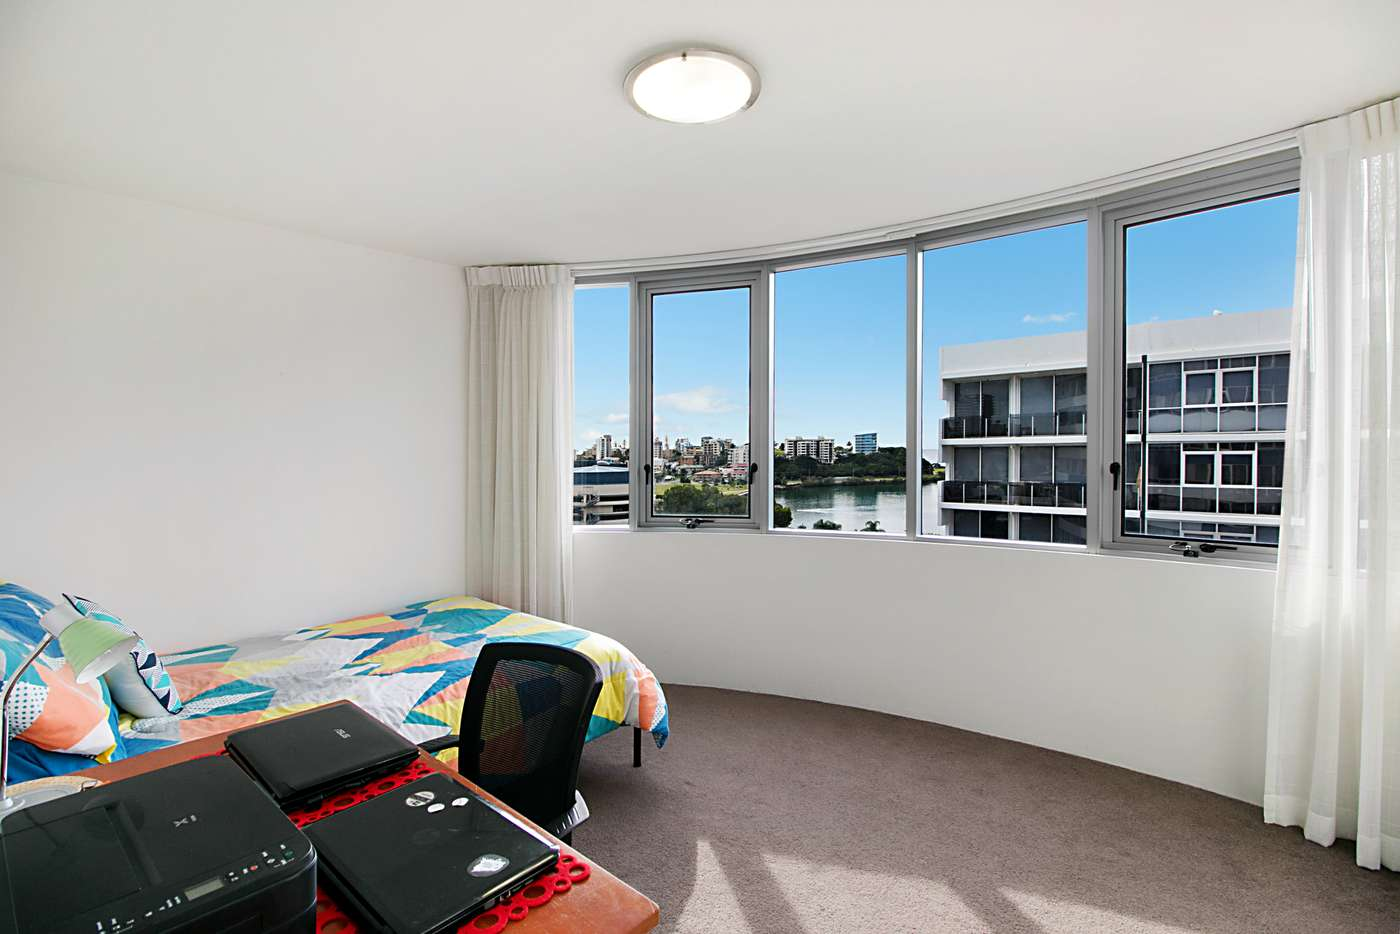 Sixth view of Homely unit listing, 1091/14-22 Stuart Street, Tweed Heads NSW 2485